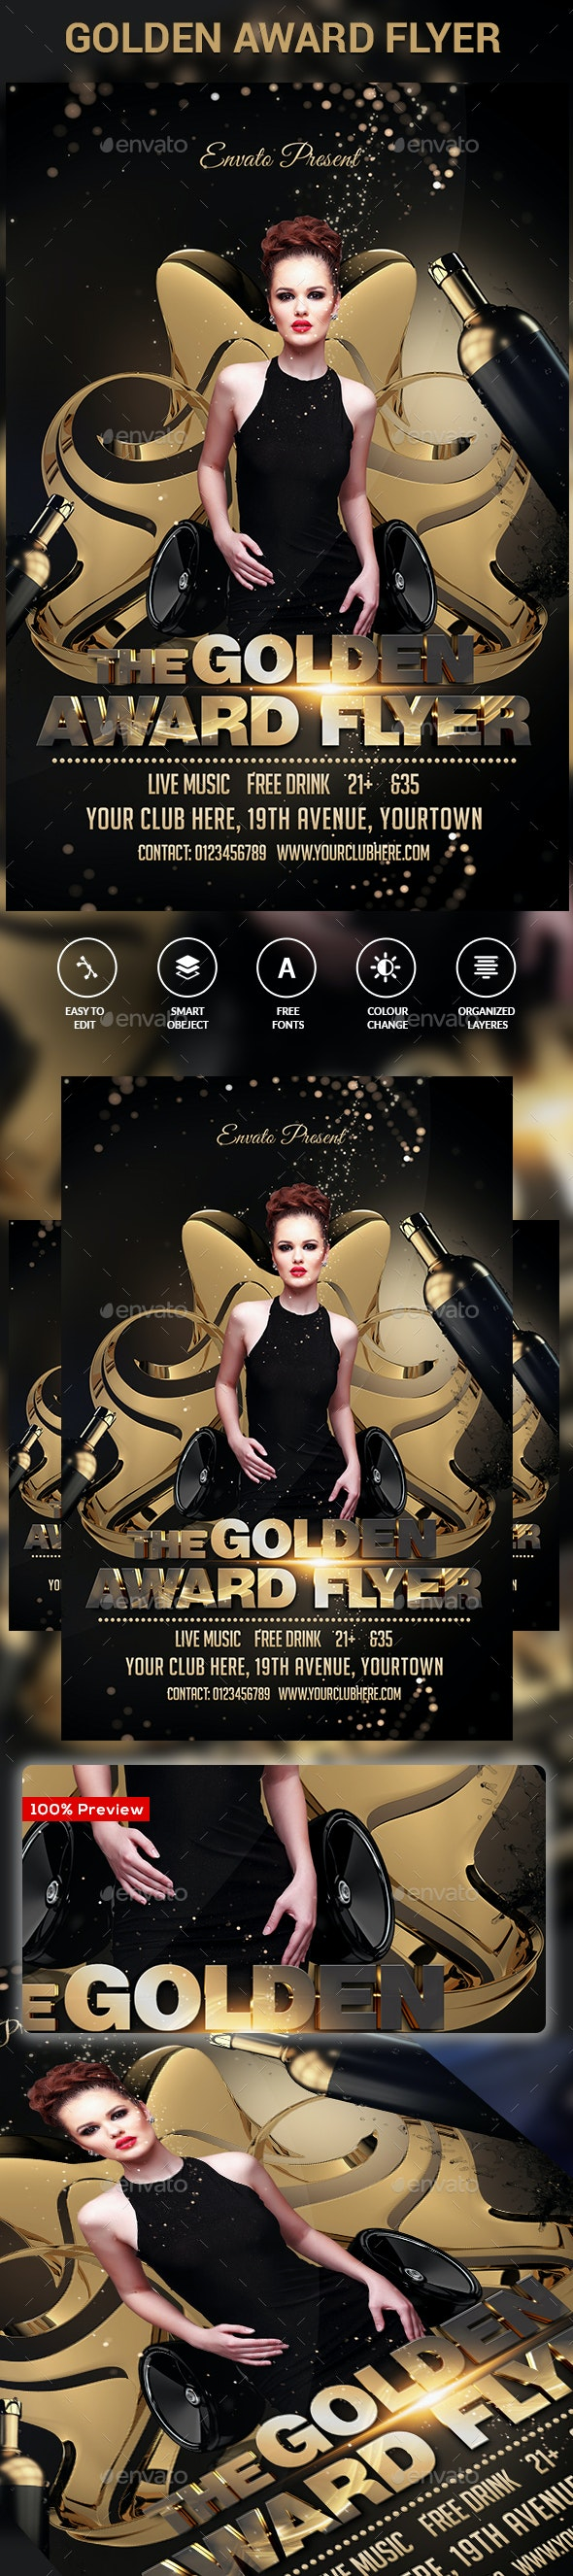 The Golden Awards Flyer  - Clubs & Parties Events